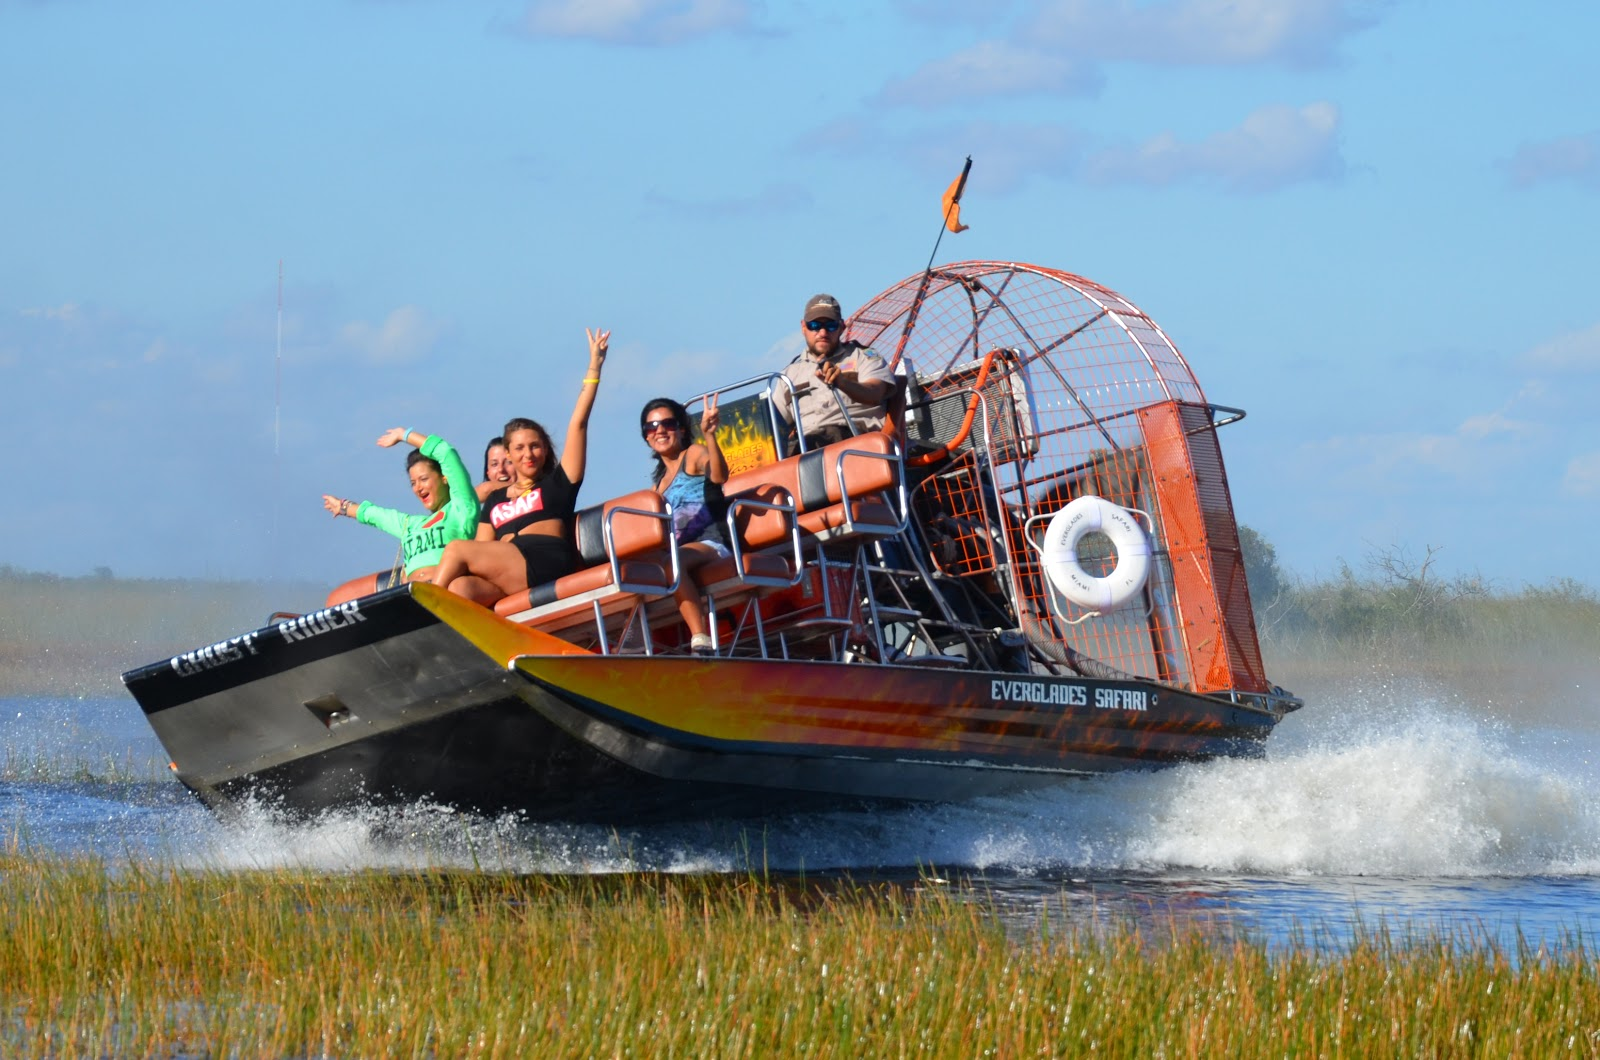 Visitors enjoying a thrilling ride on Everglades Safari Park Private National Park Airboat Tour.